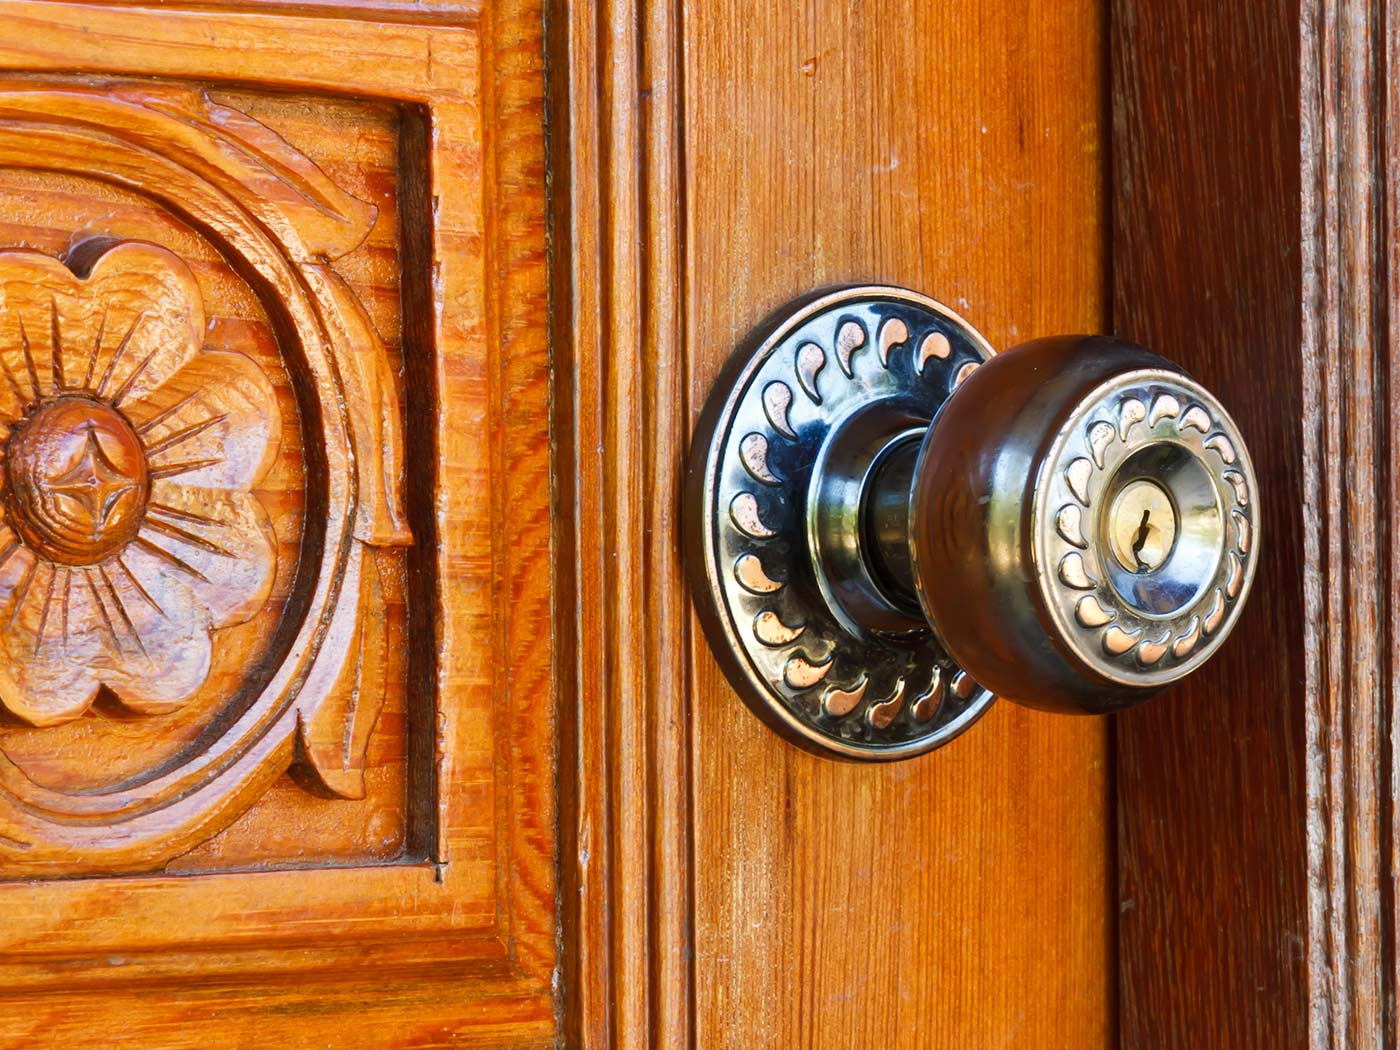 Locked Out? How To Open a Locked Door